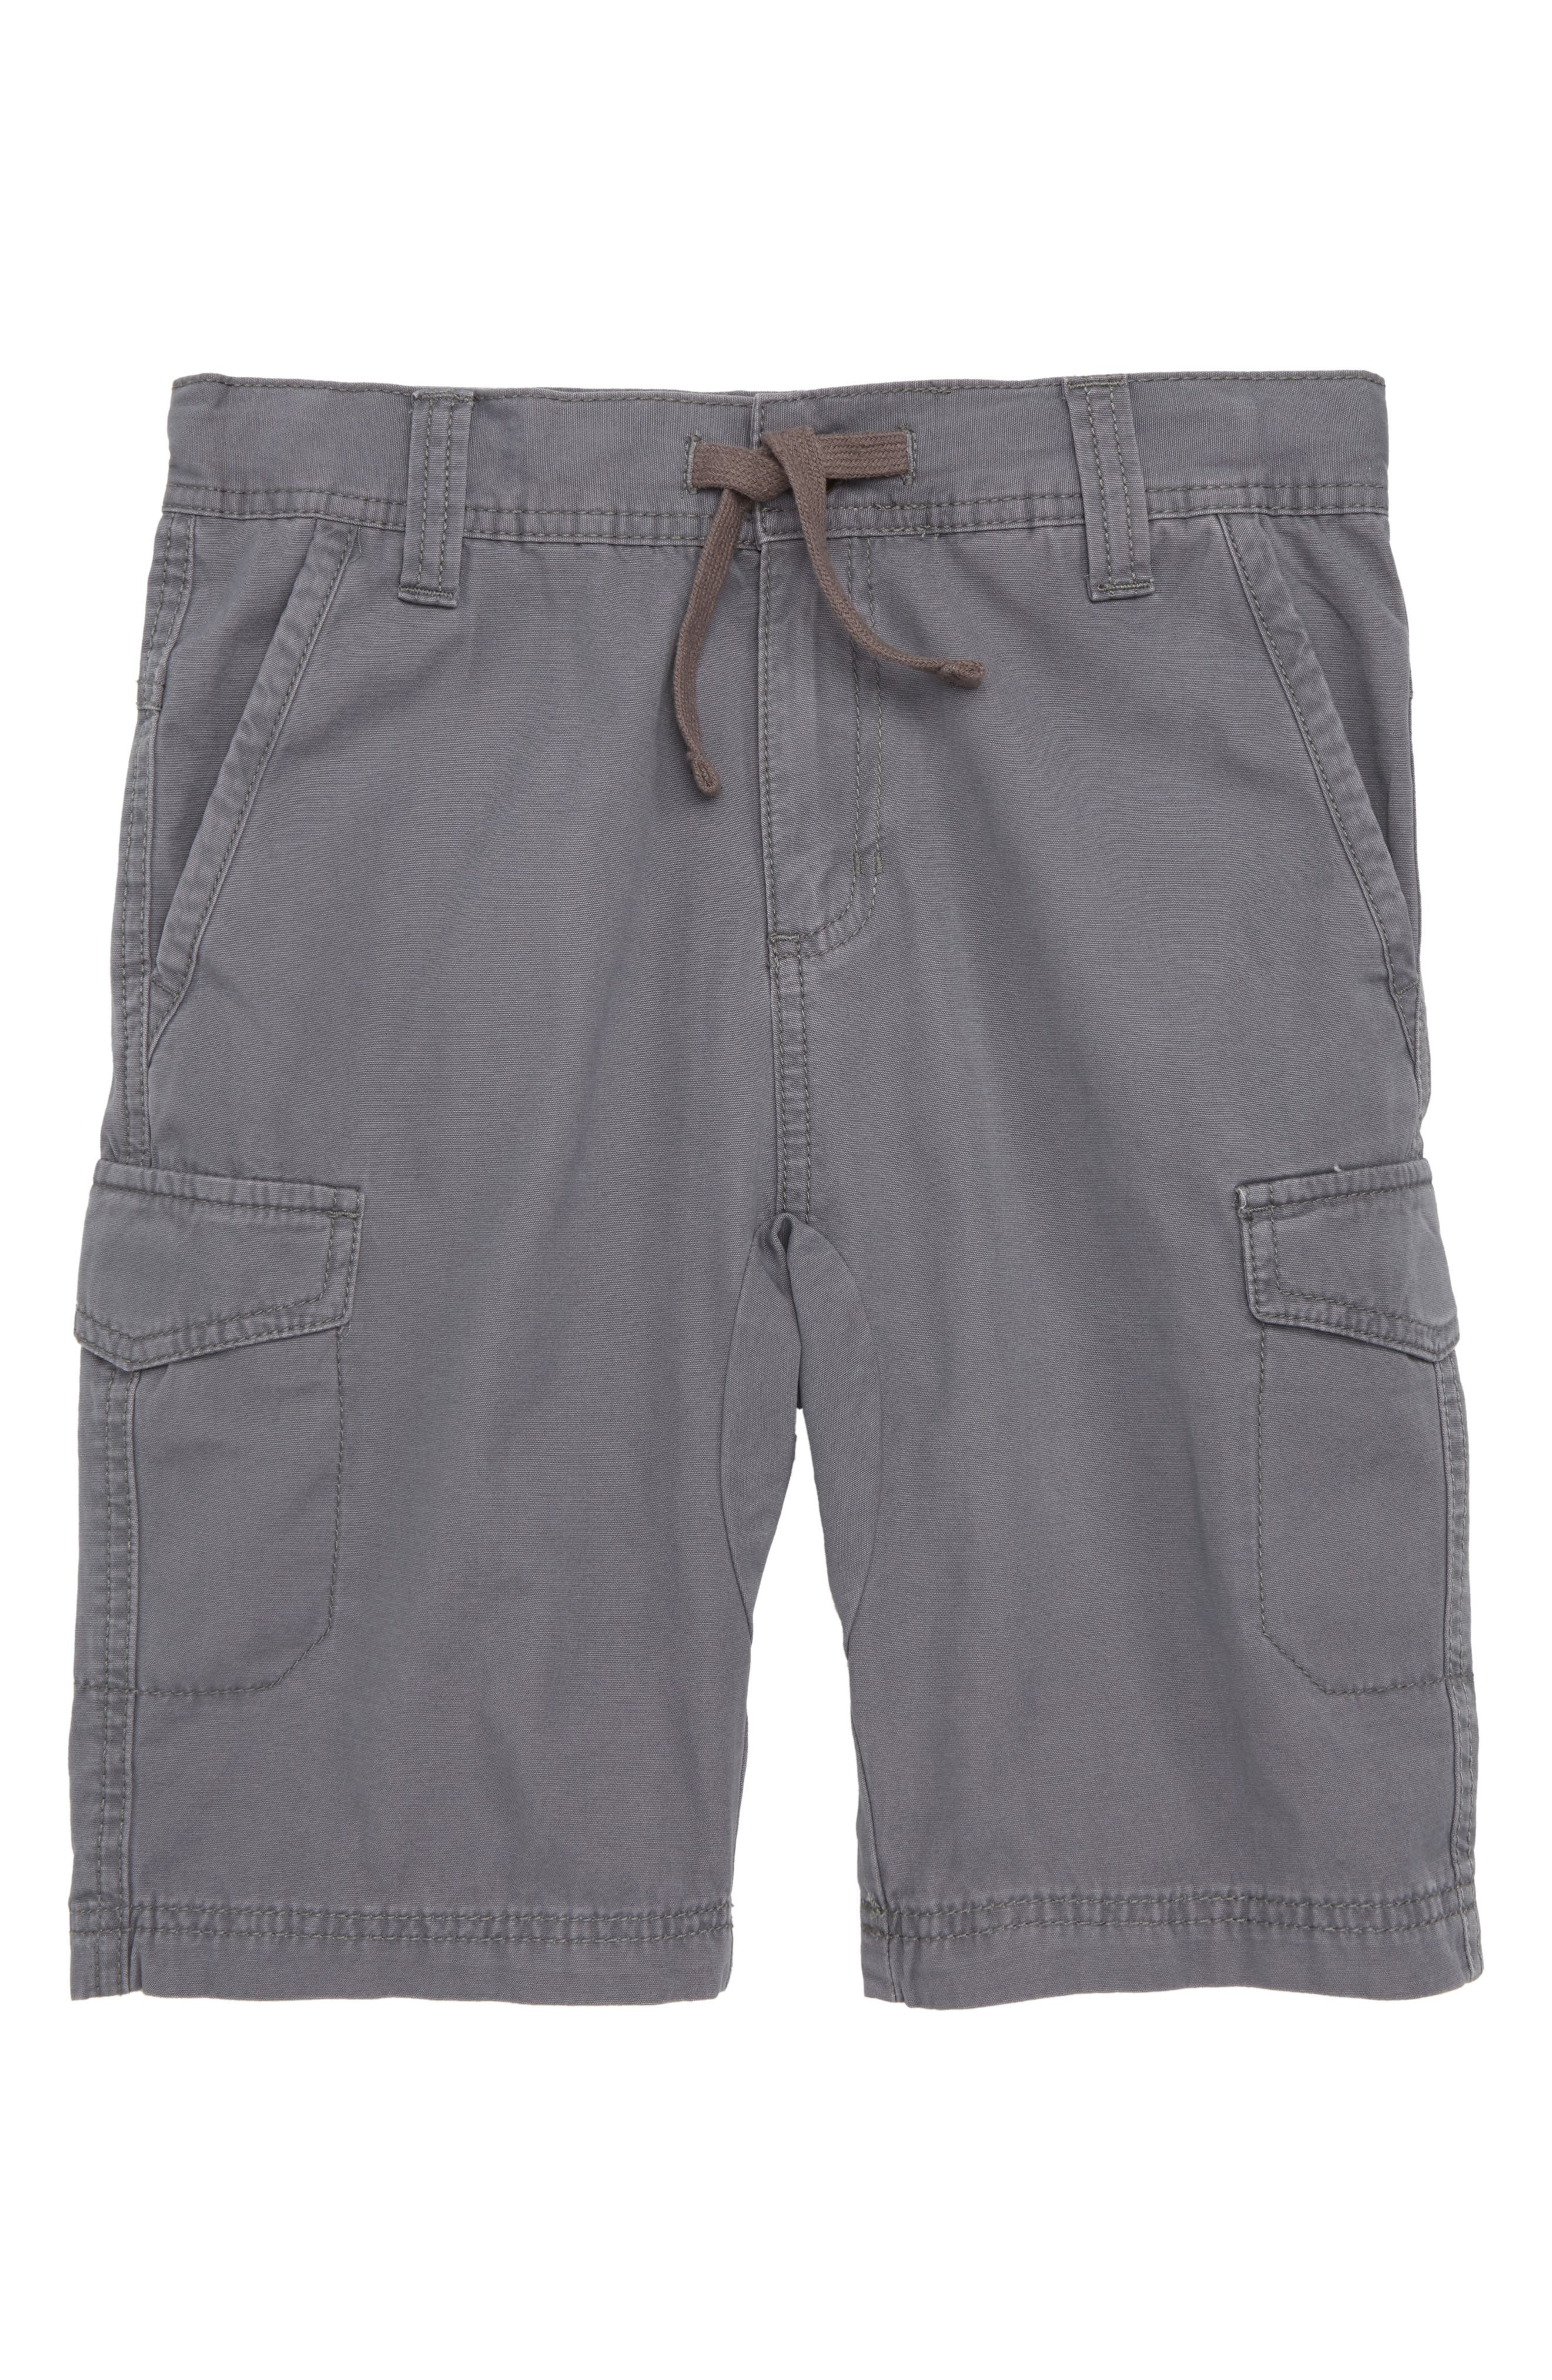 Utility Shorts,                             Main thumbnail 1, color,                             021